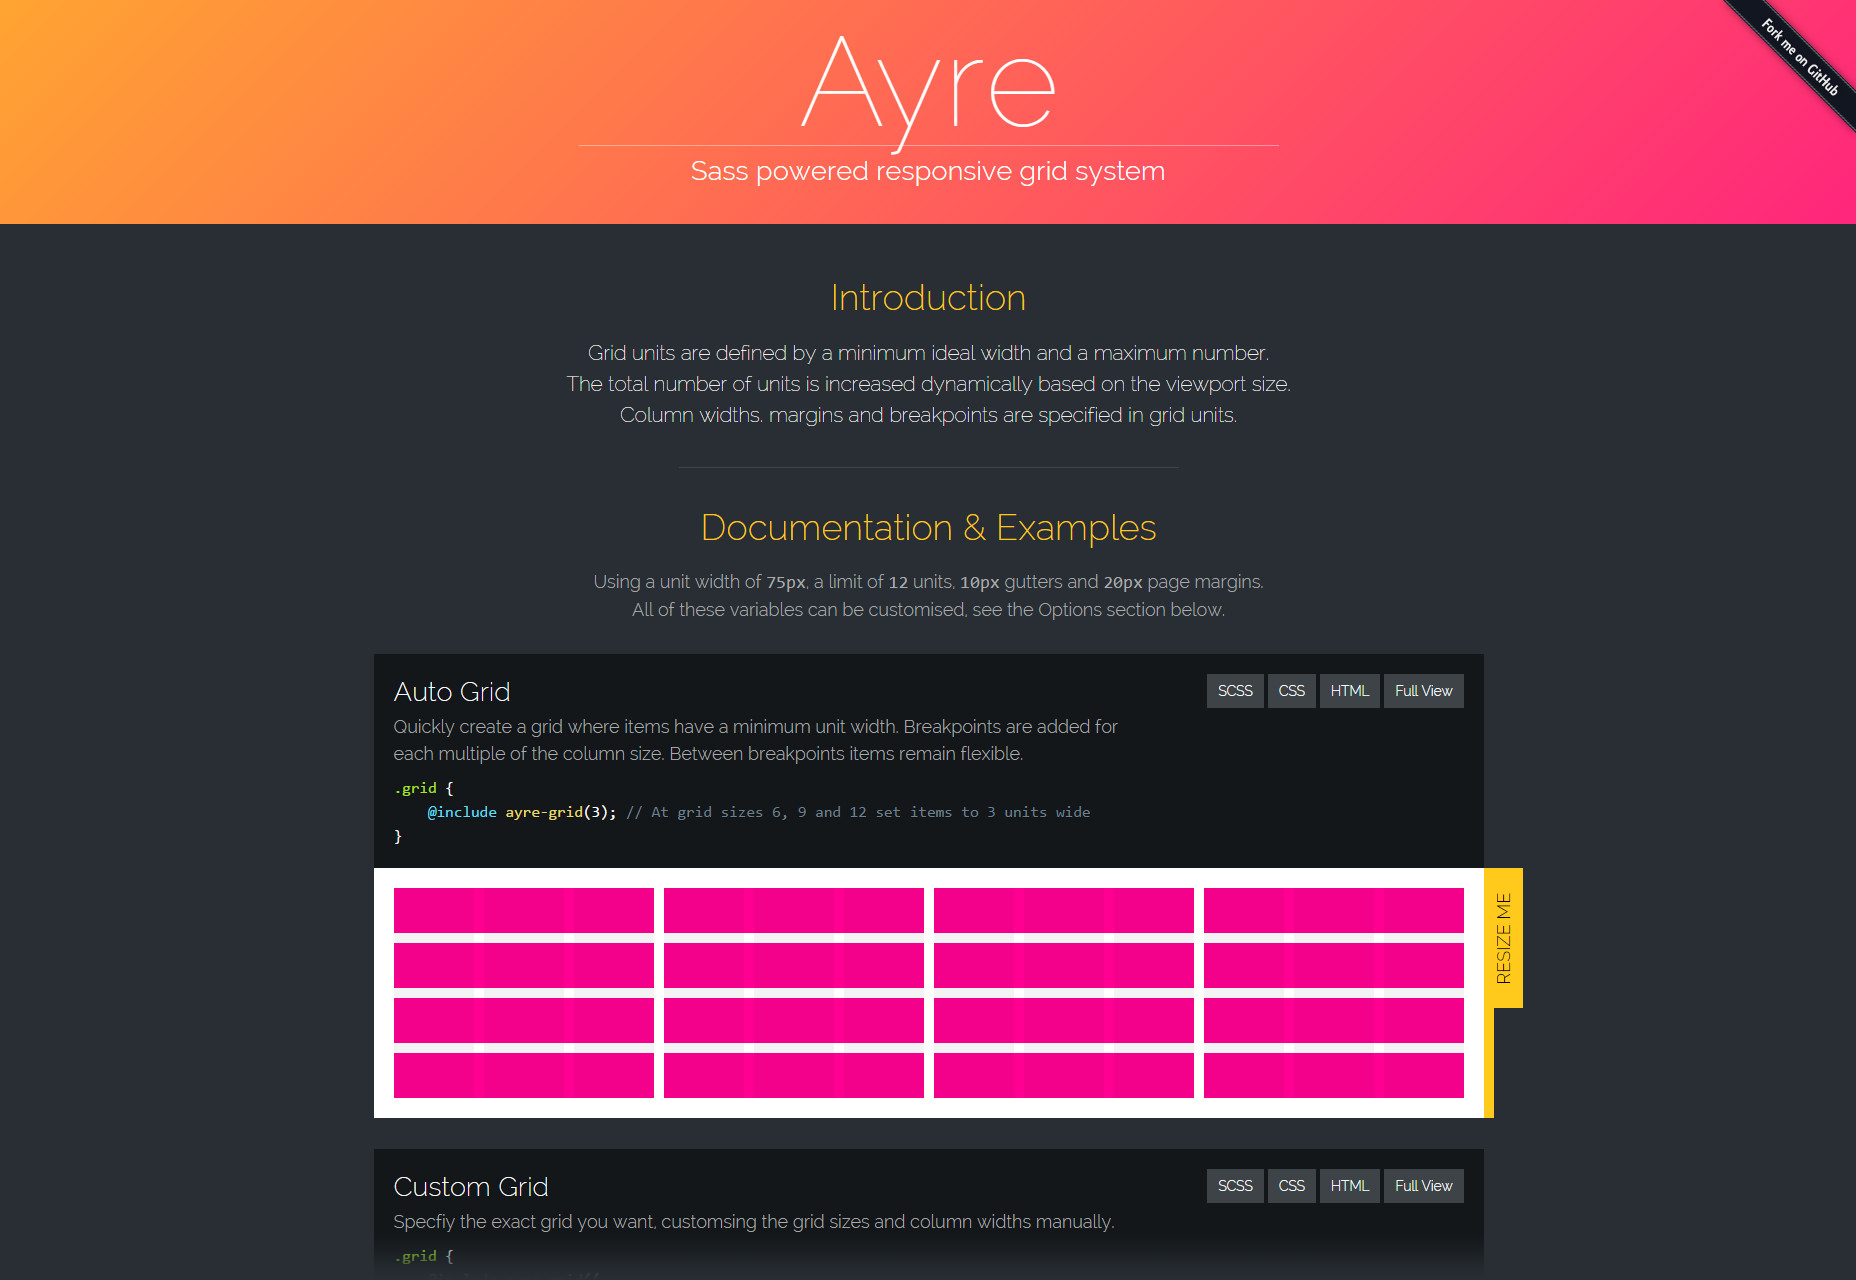 Ayre: A Sass Powered Responsive Grid System